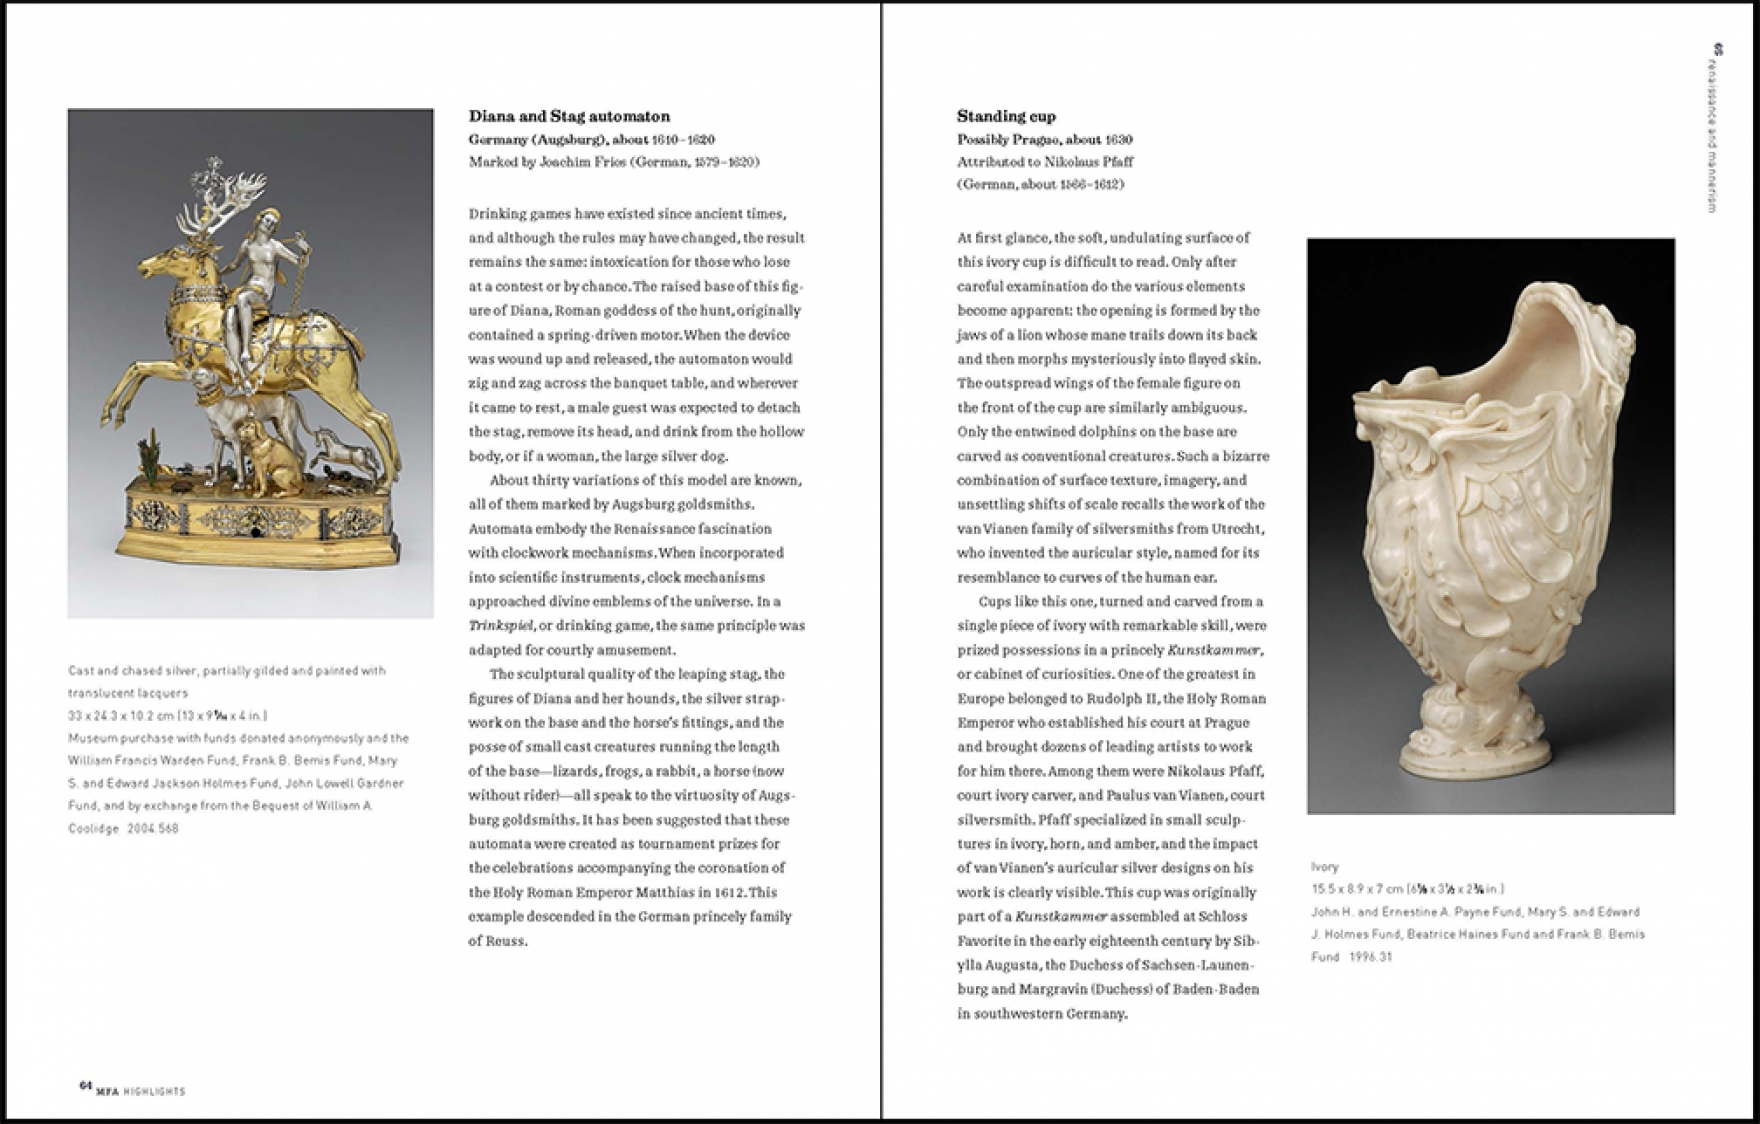 European Decorative Arts sample spread 1